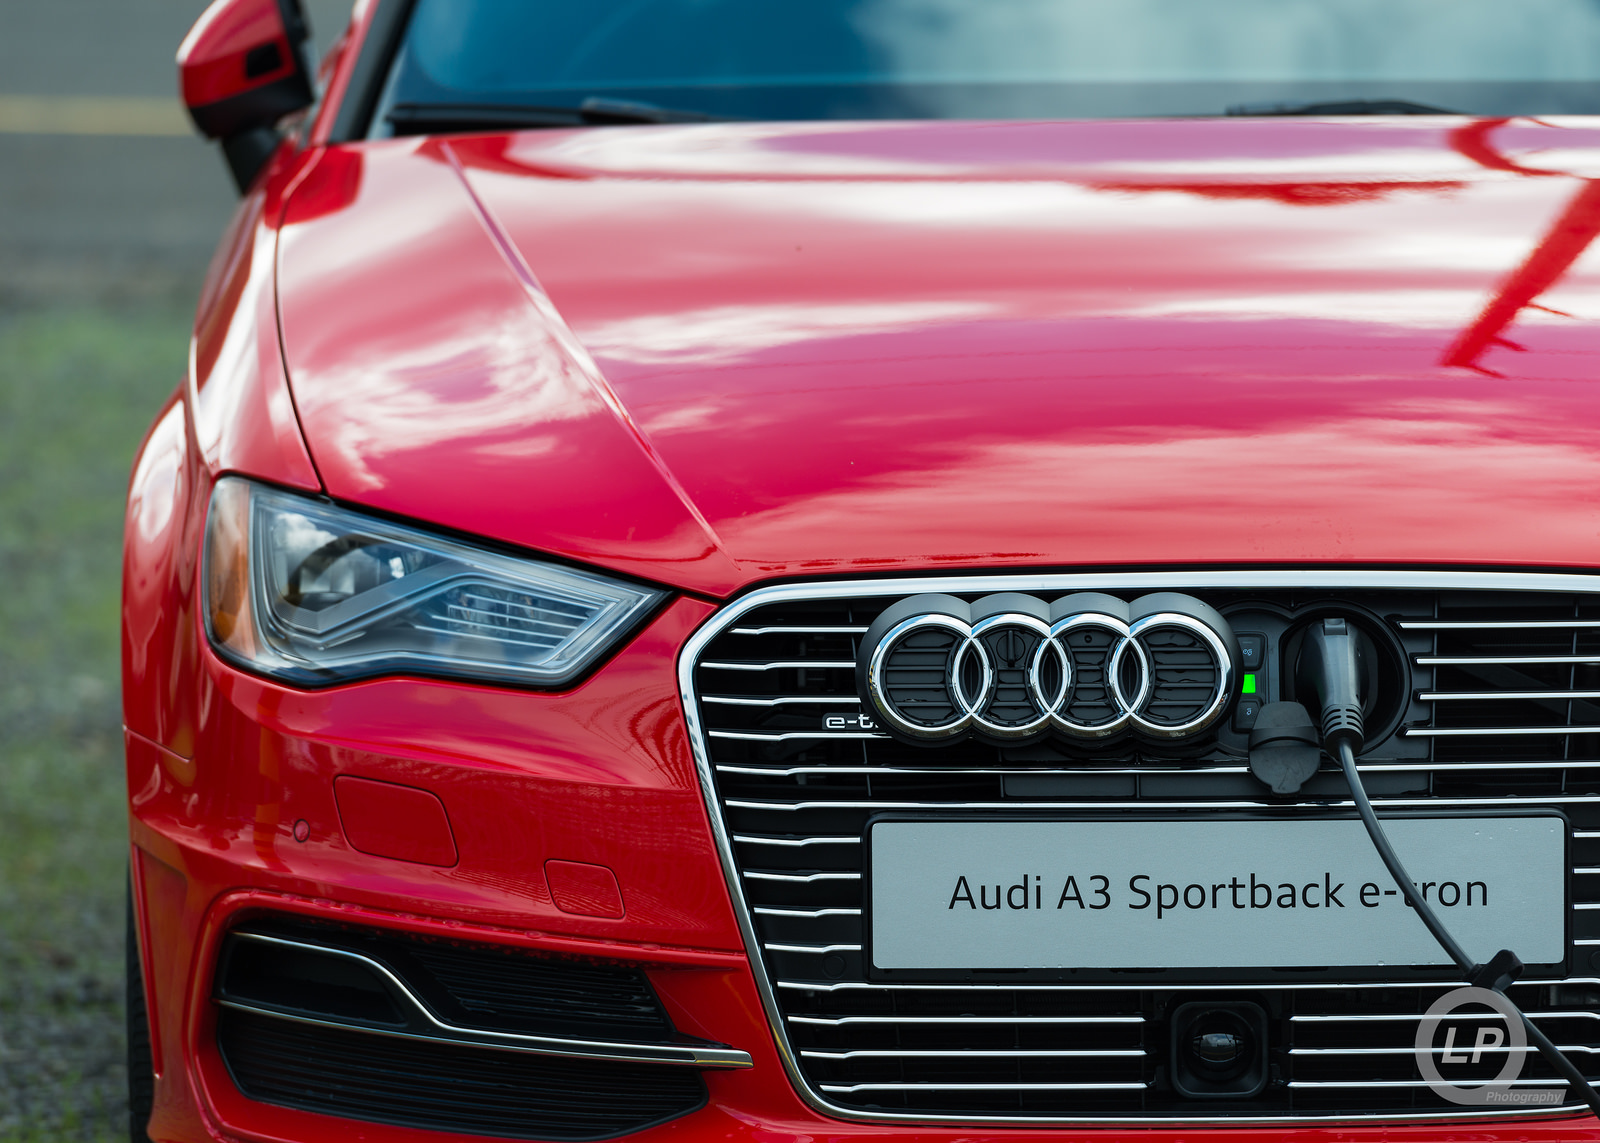 Red Audi A3 Sportback e-tron Charging Up at Quattrofest